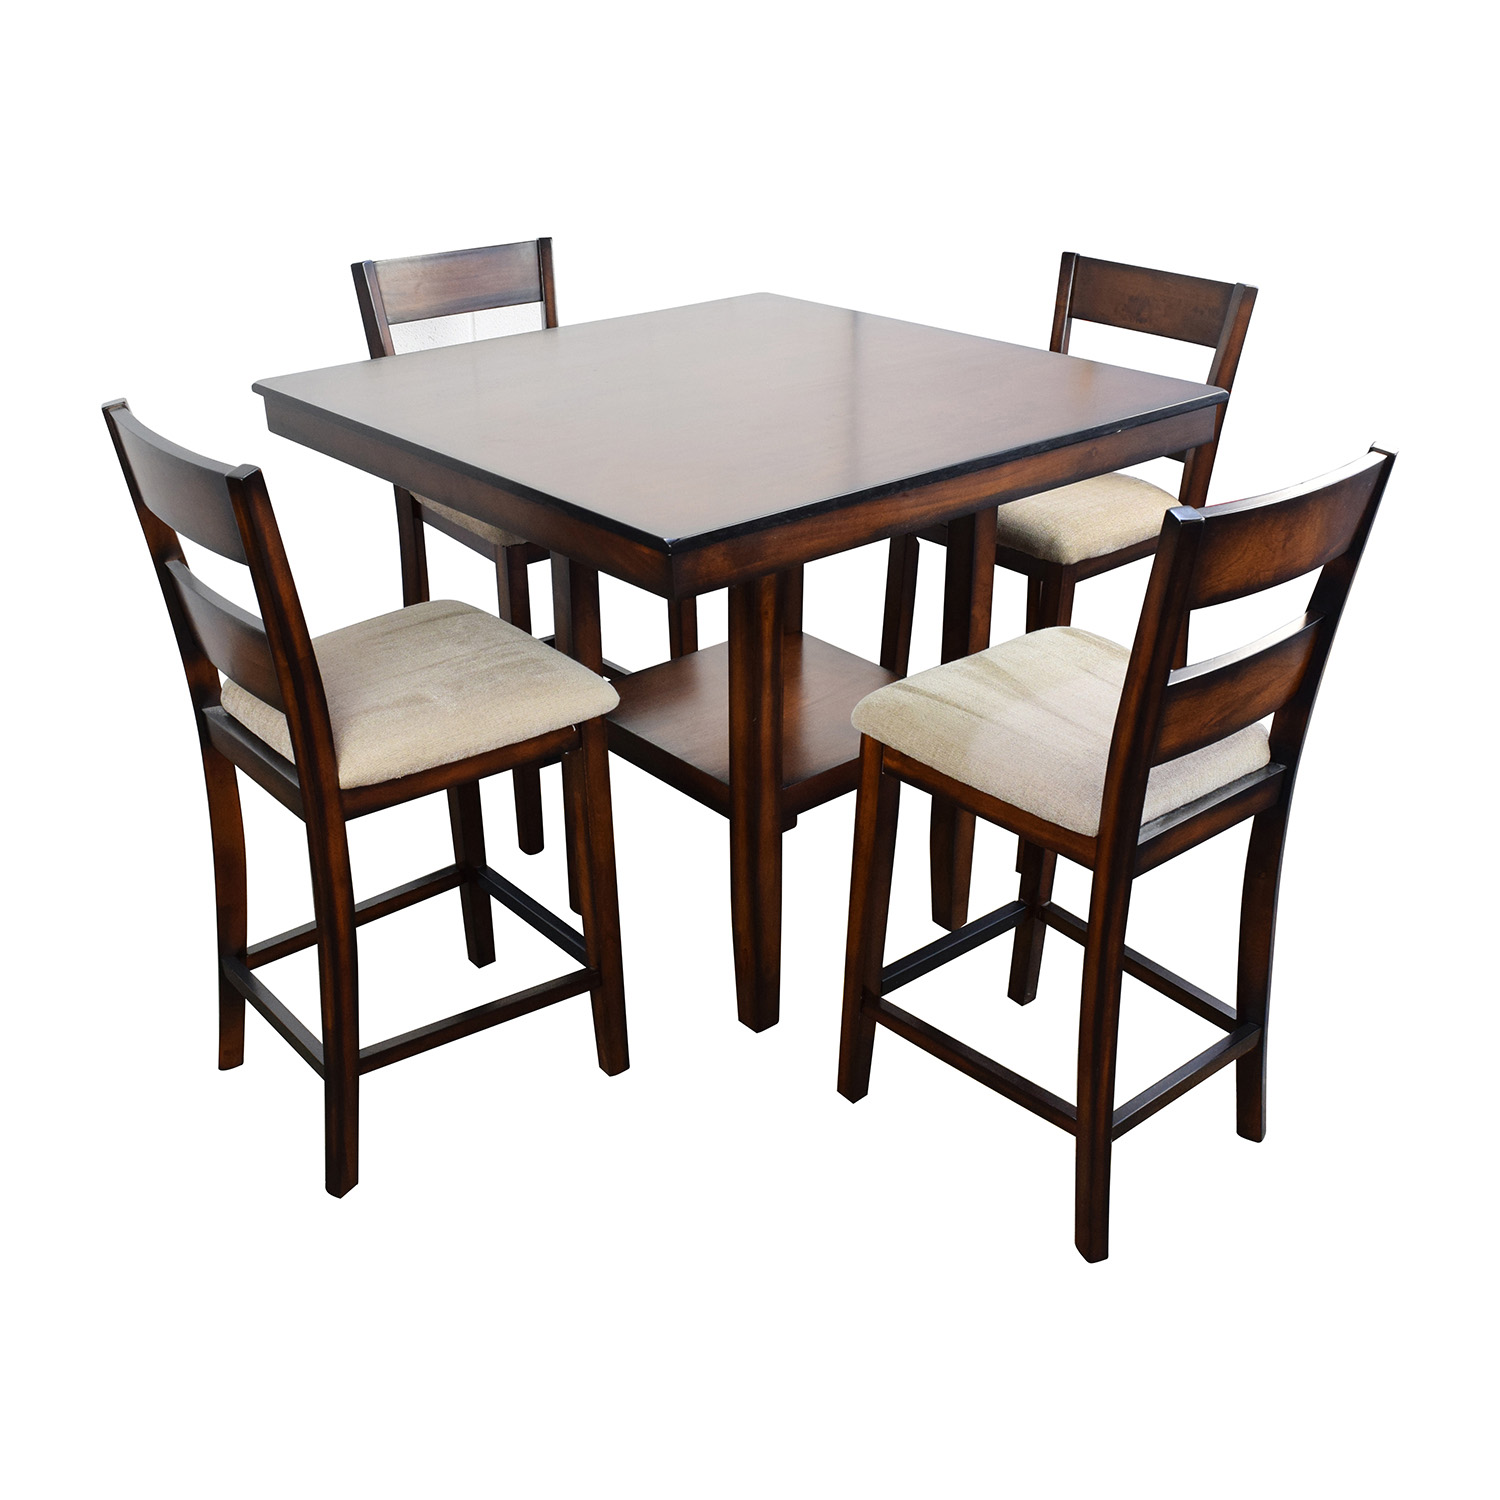 Macy's Macy's Branton 5-Pc. Counter-Height Dining Set coupon